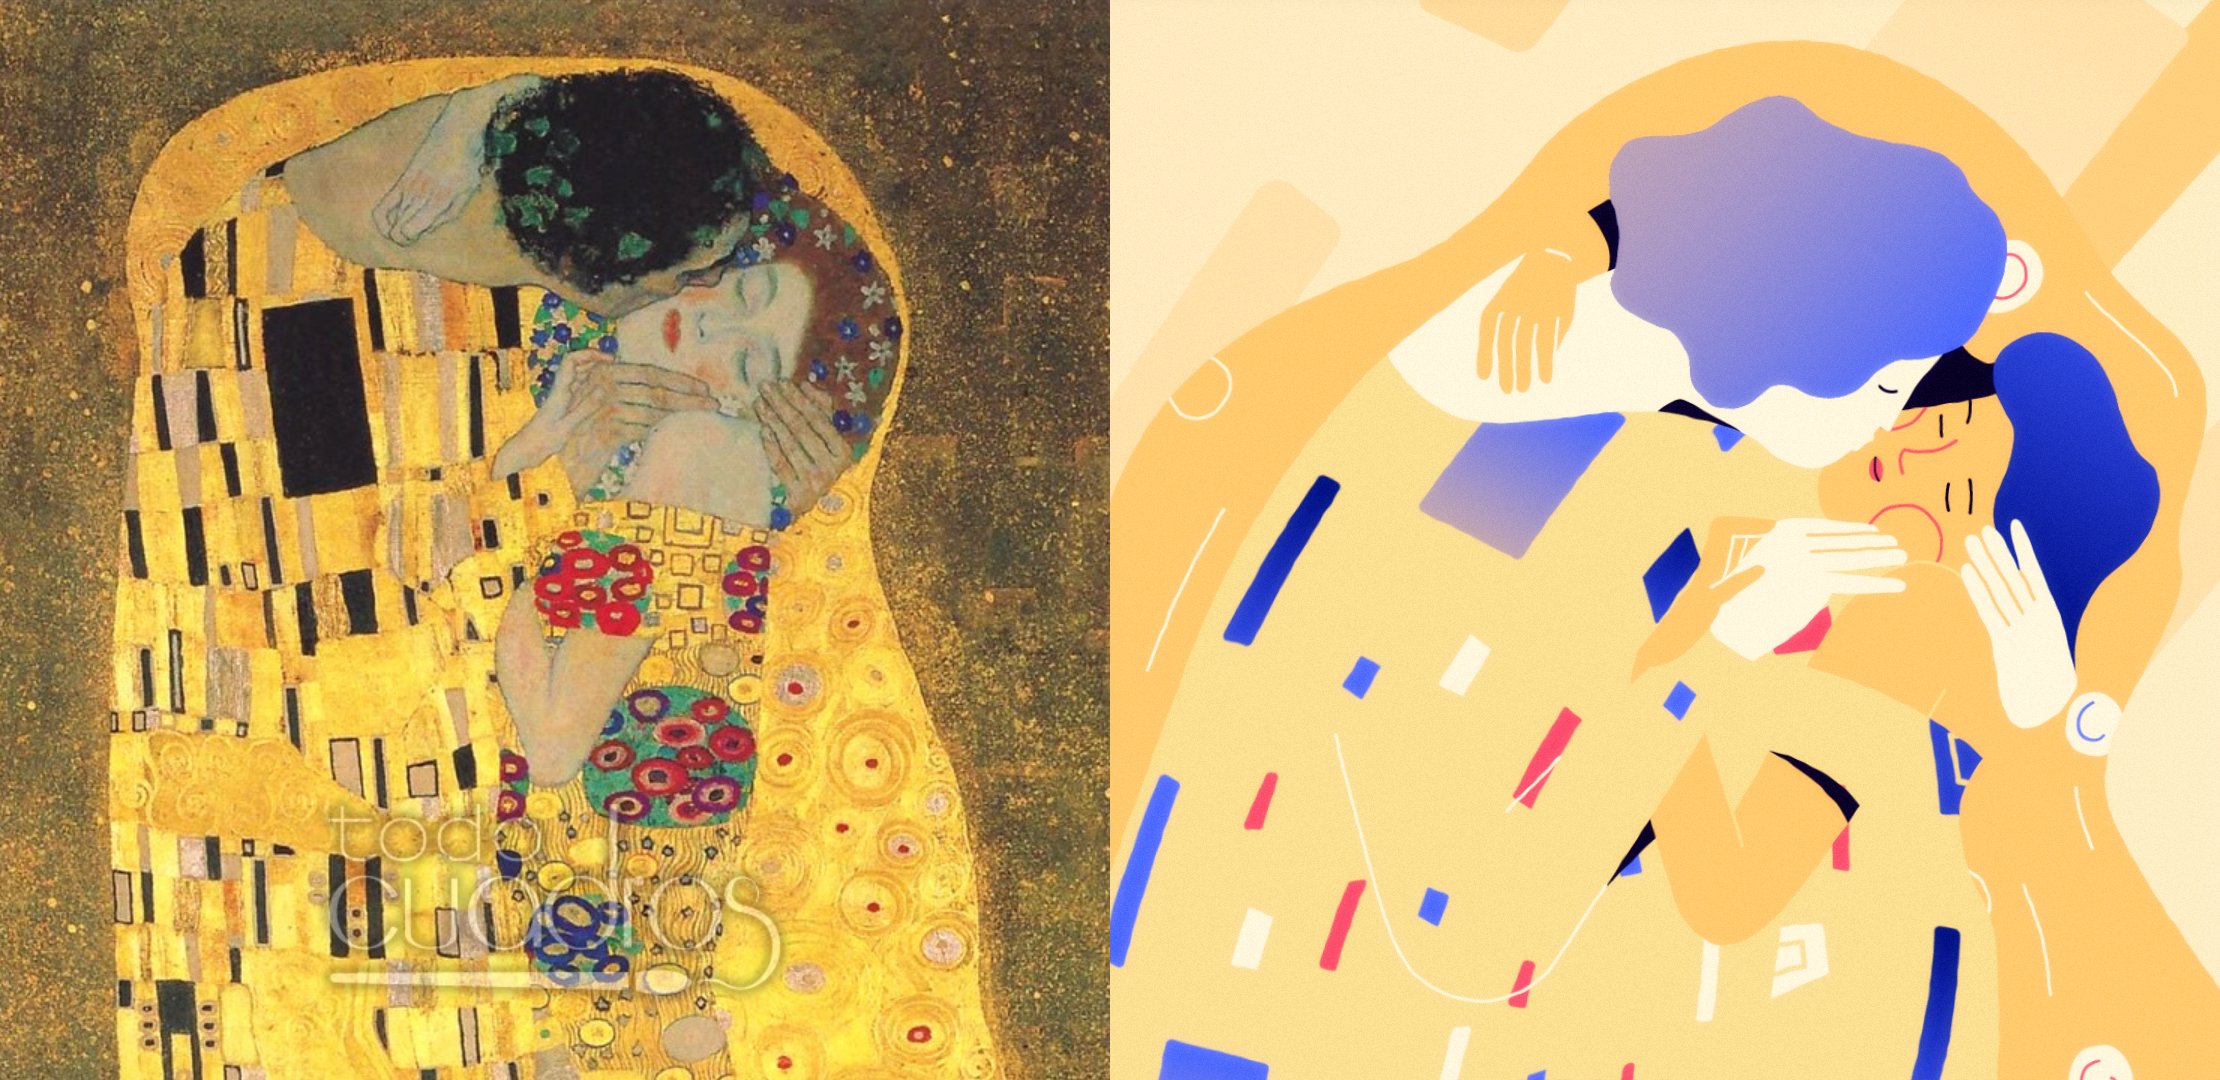 The Kiss by Klimt original and illustration